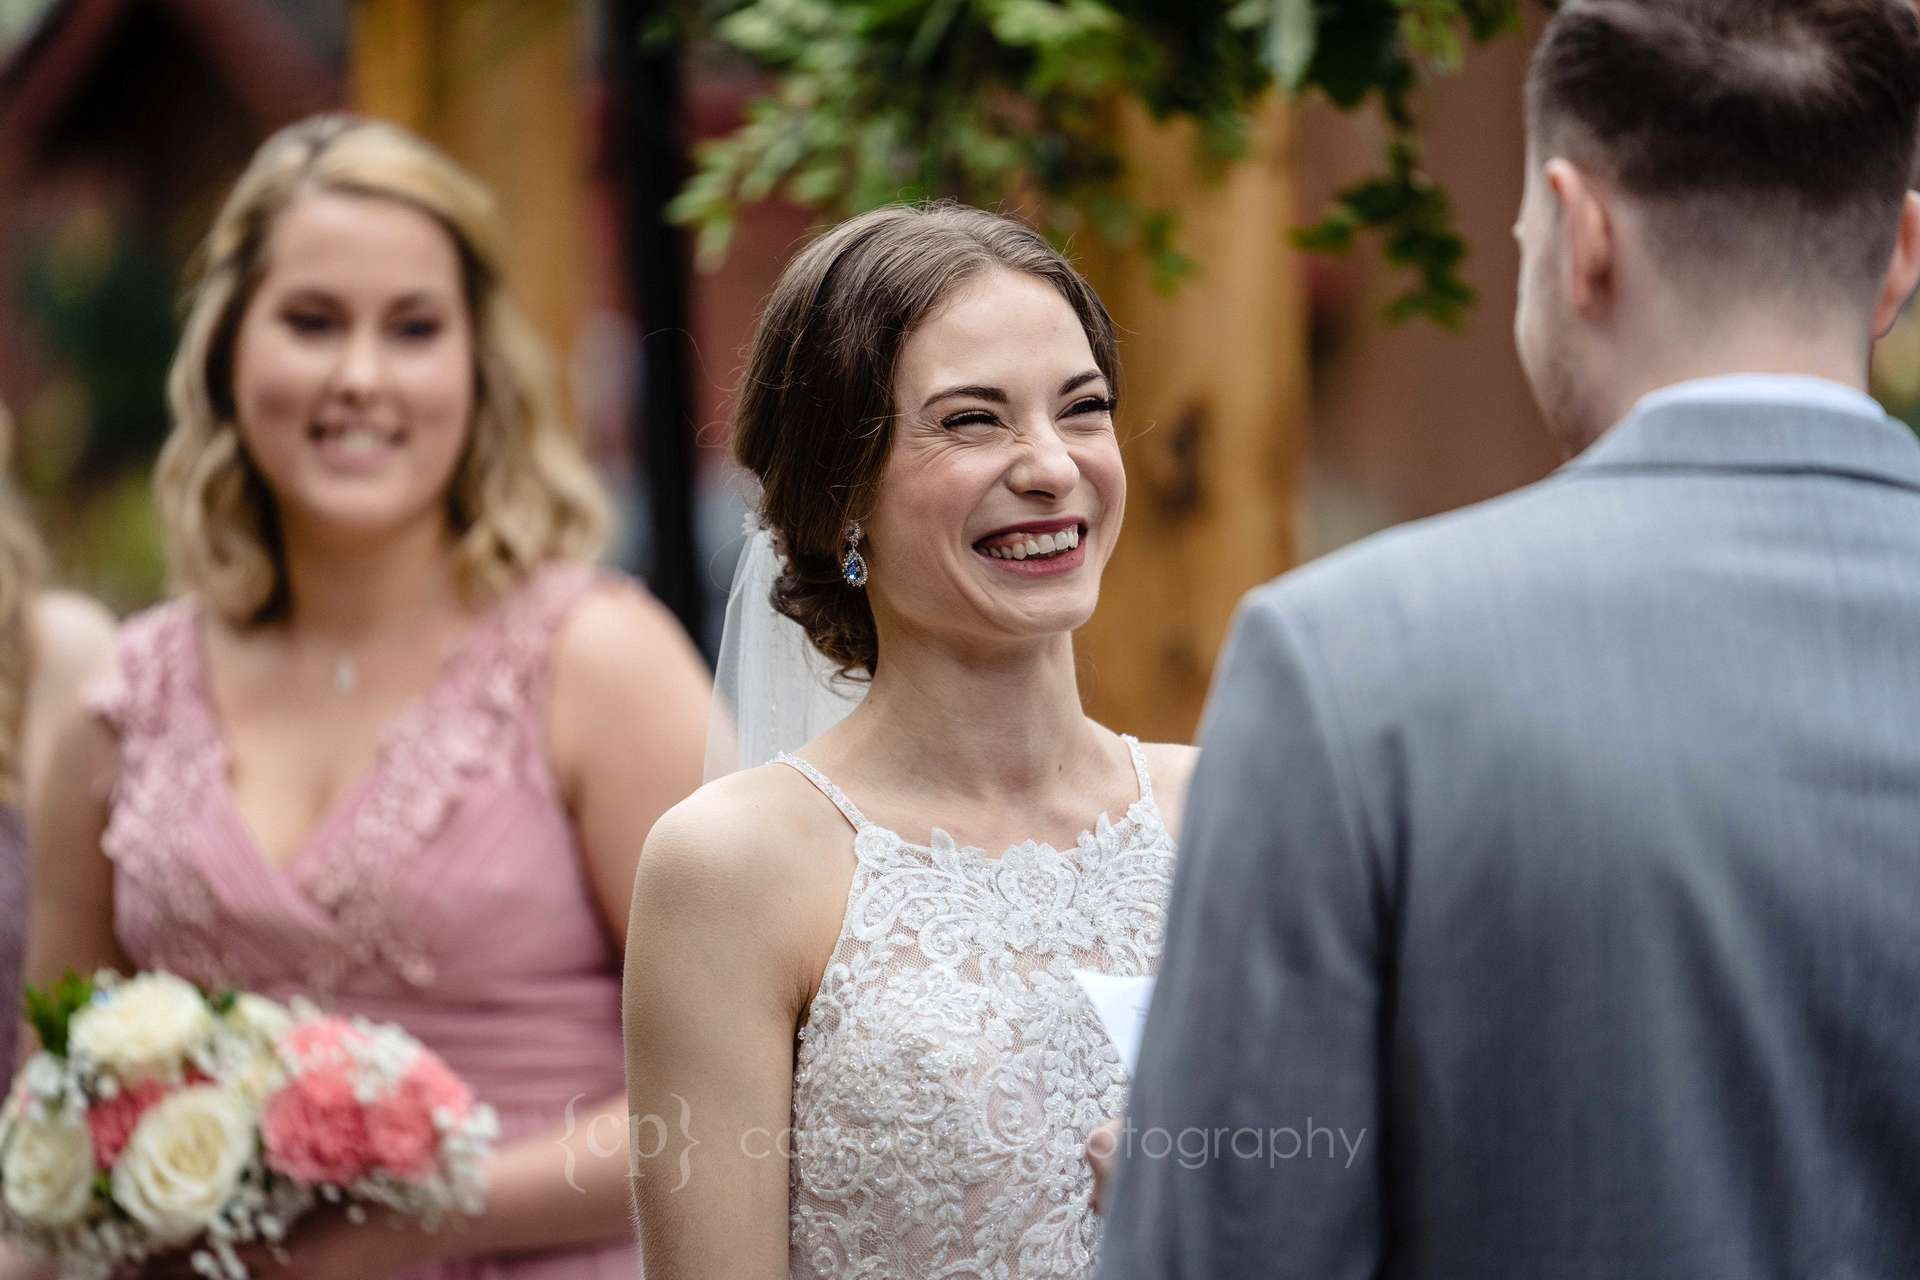 Ronya looking at Nick during their vows. They had their wedding in the garden at Willows Lodge in Woodinville.